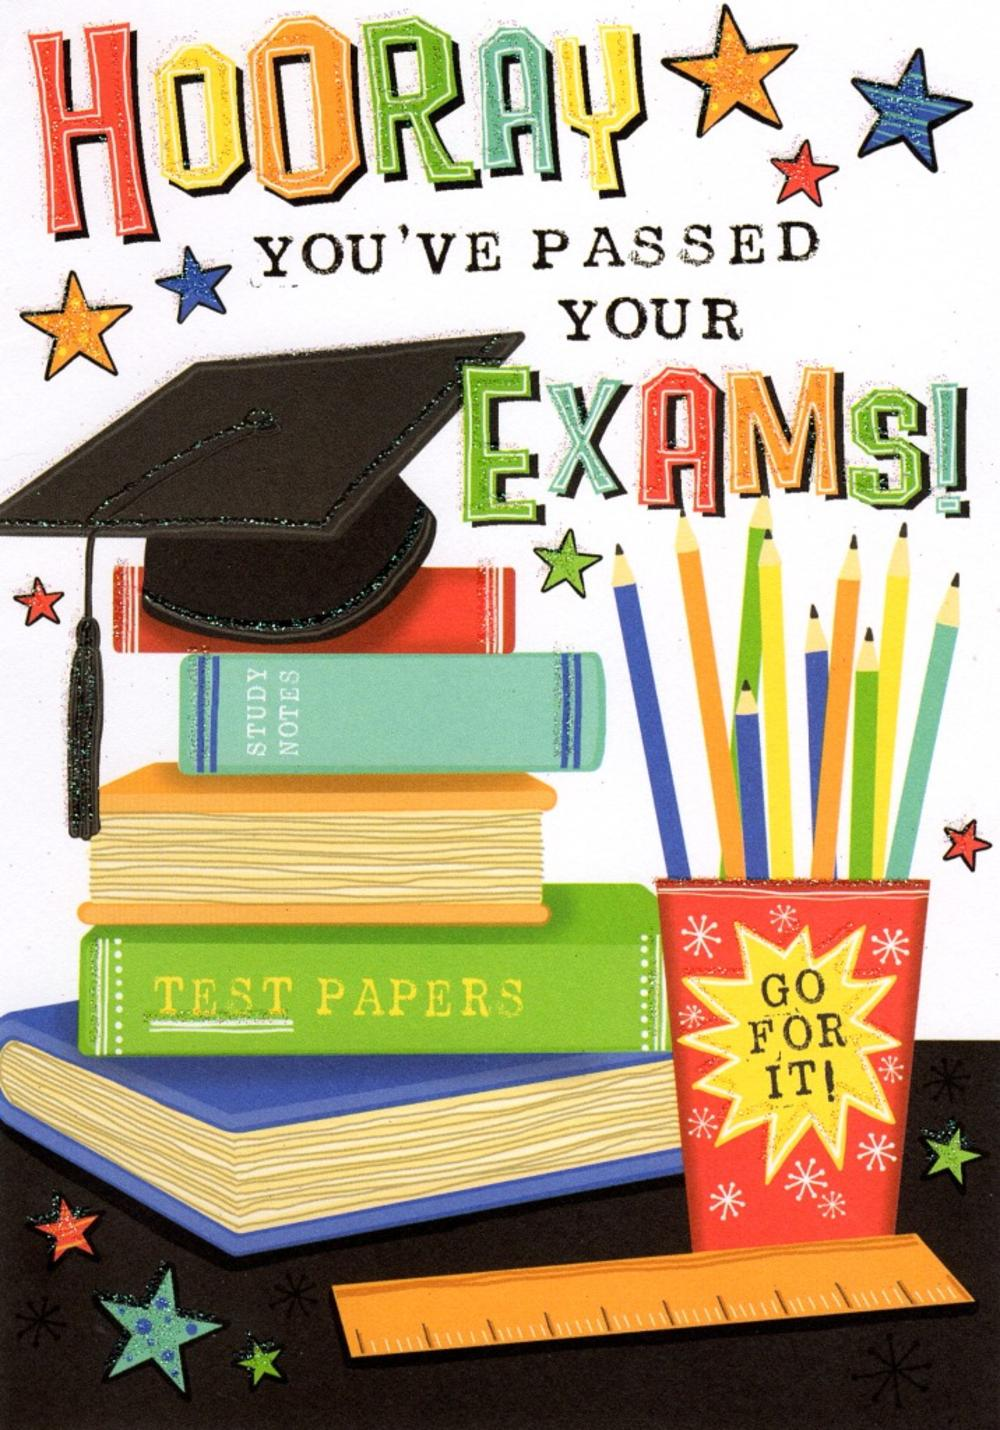 Hooray You've Passed Your Exams Greeting Card